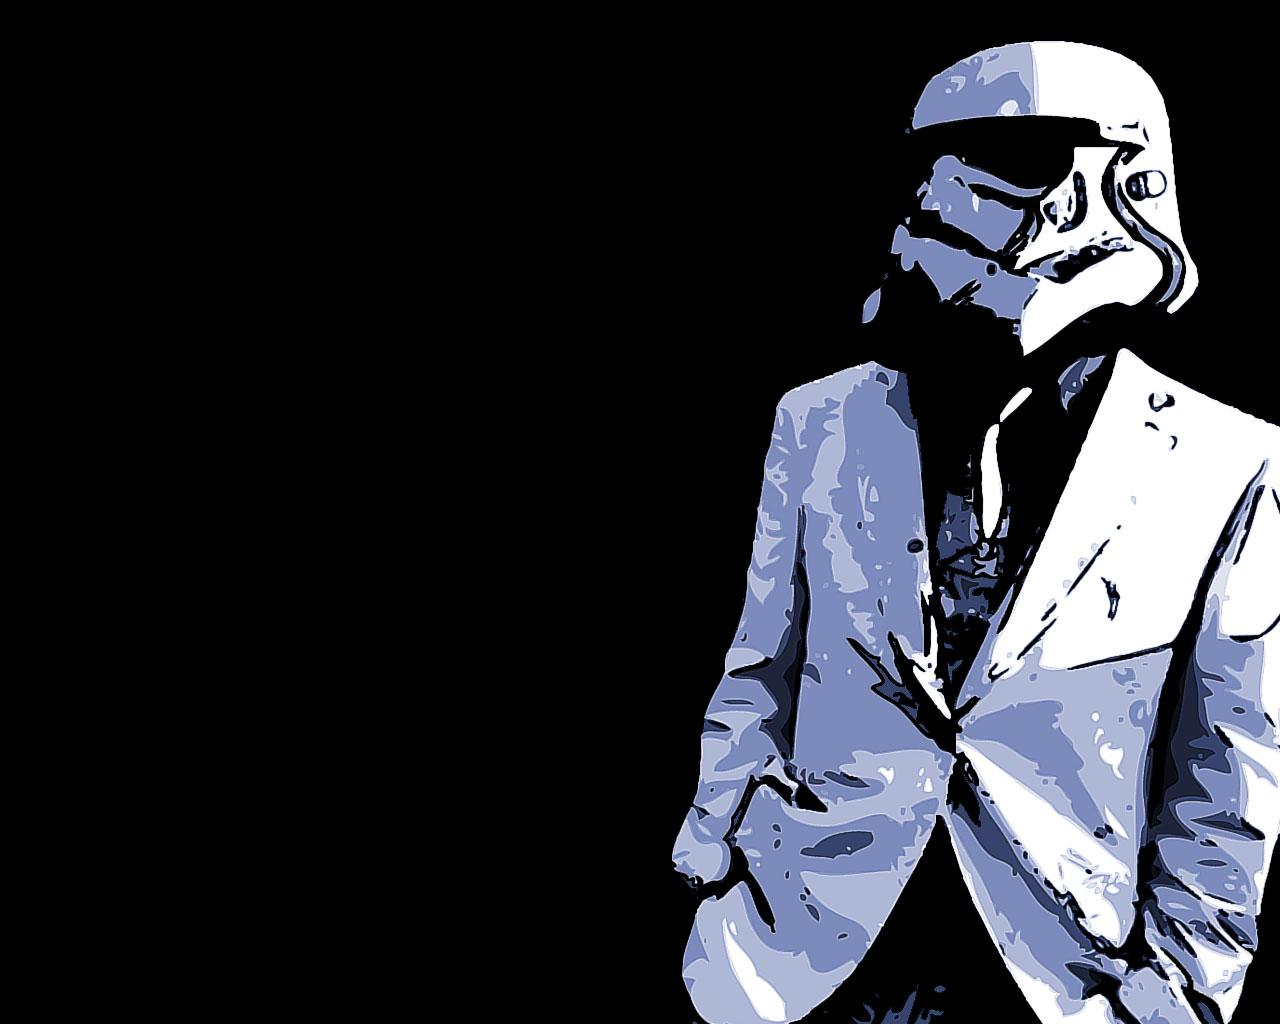 Star Wars Wallpaper 1280x1024 Star Wars 1280x1024